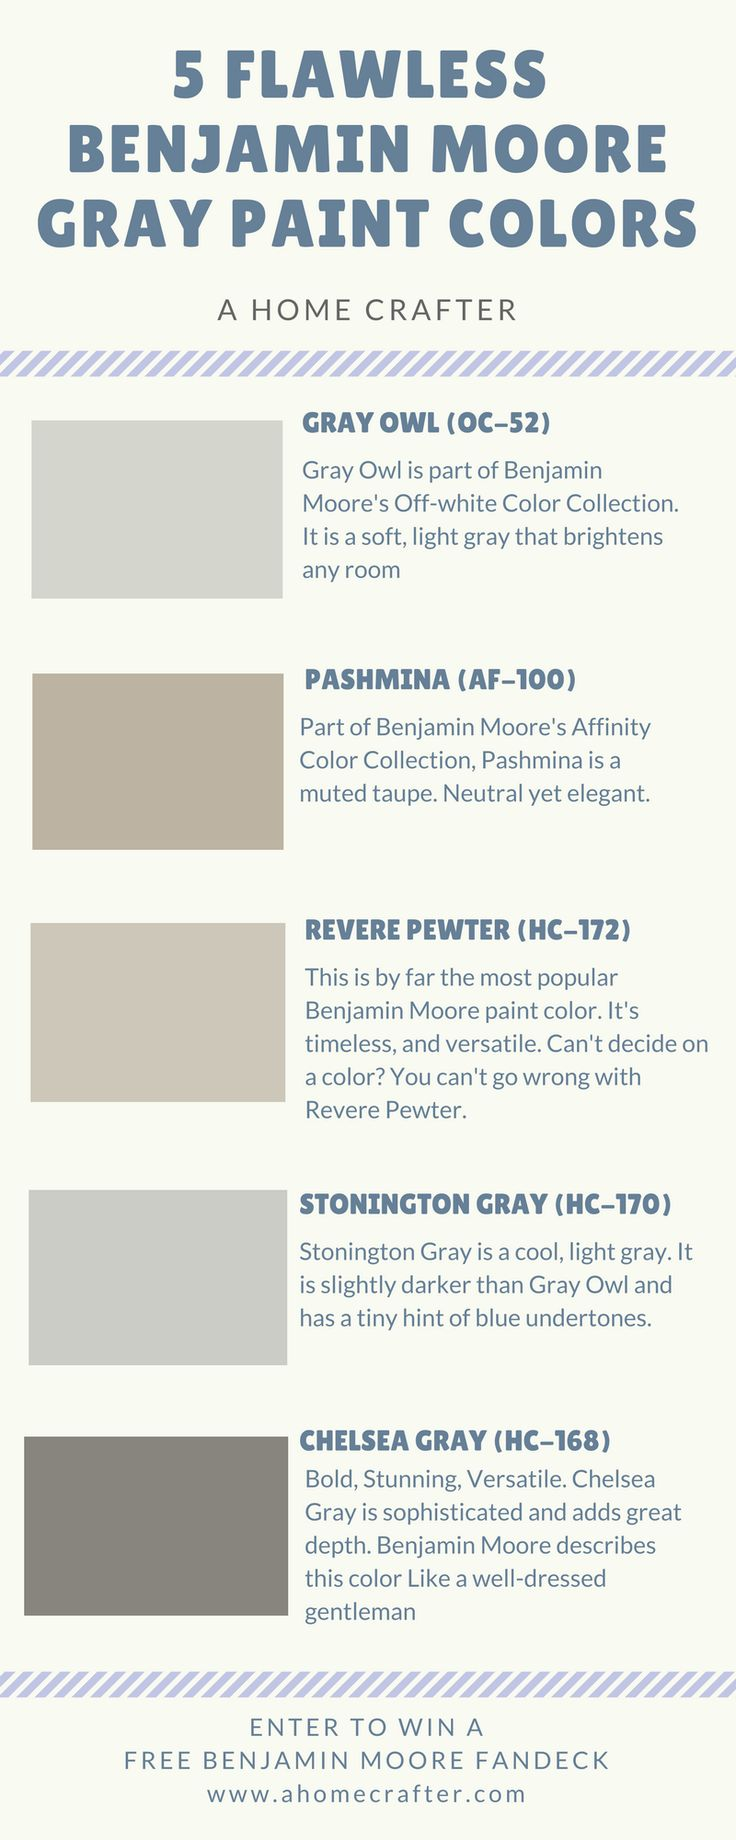 I personally love these 5 Benjamin Moore Gray Paint Colors. They are soft, versatile and timeless. These are 5 colors